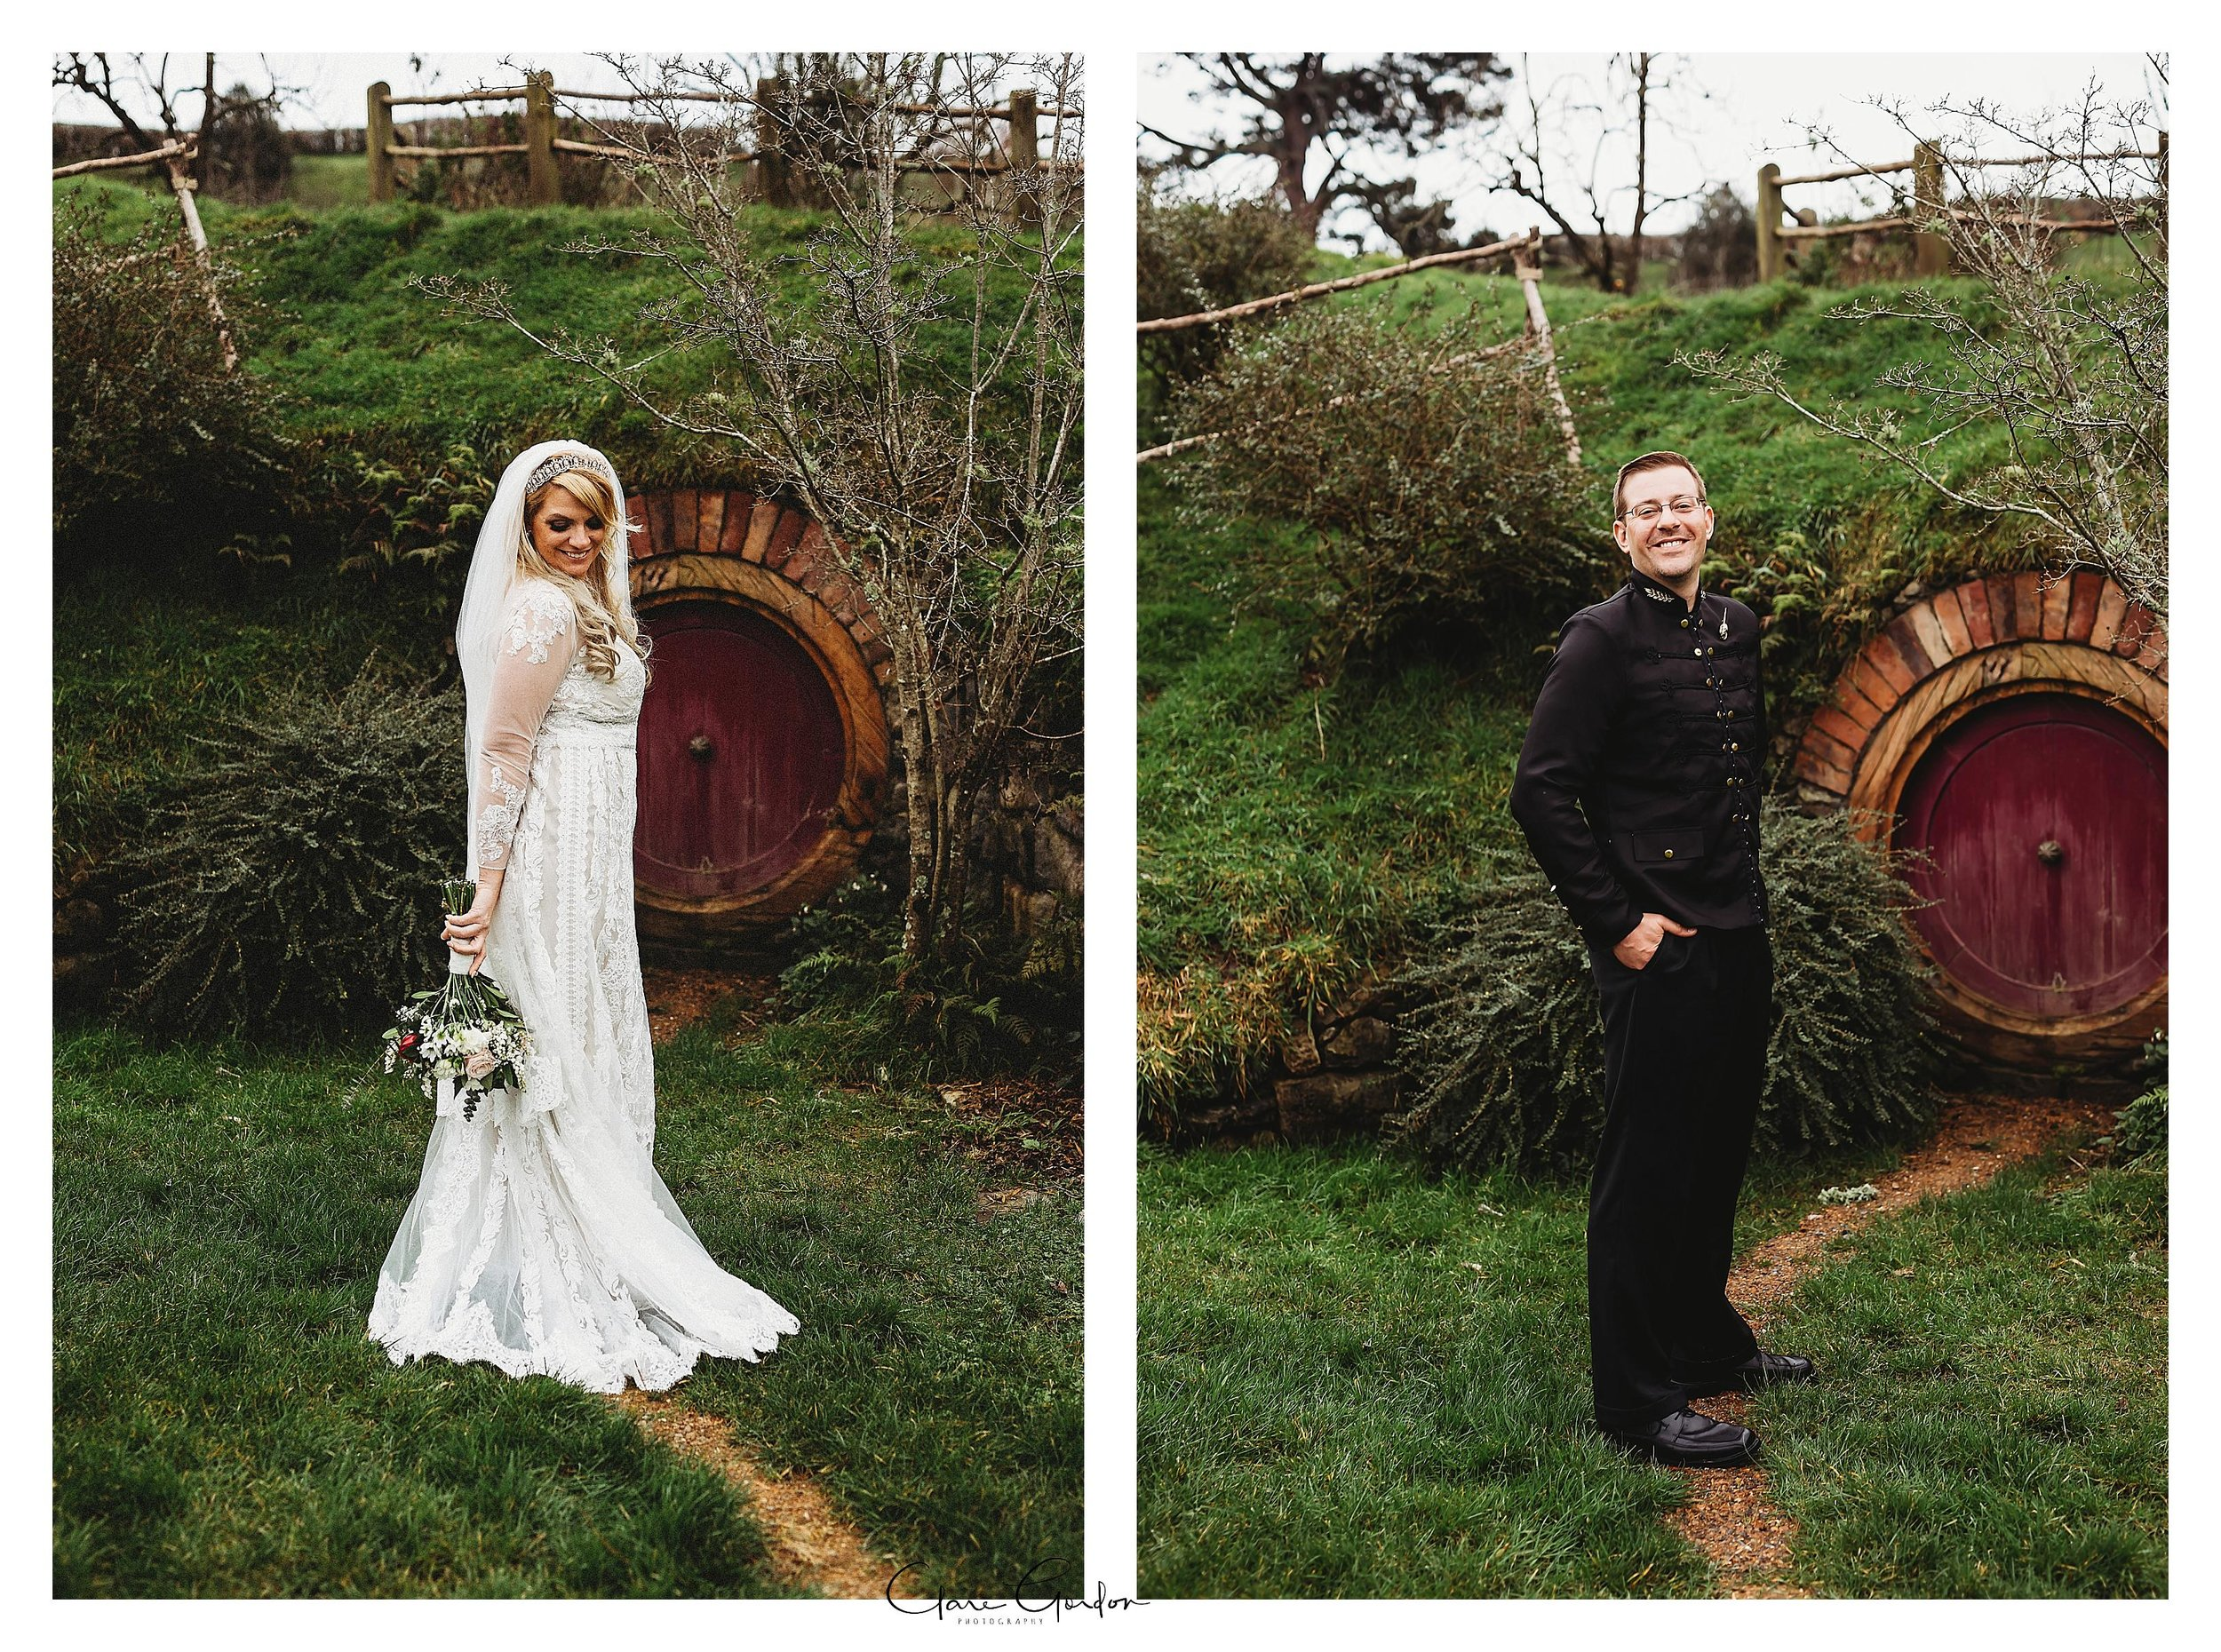 Hobbiton-movie-set-wedding-photo-matamata-bride-and-groom-Photo_newZealand-wedding-photographer (16).jpg